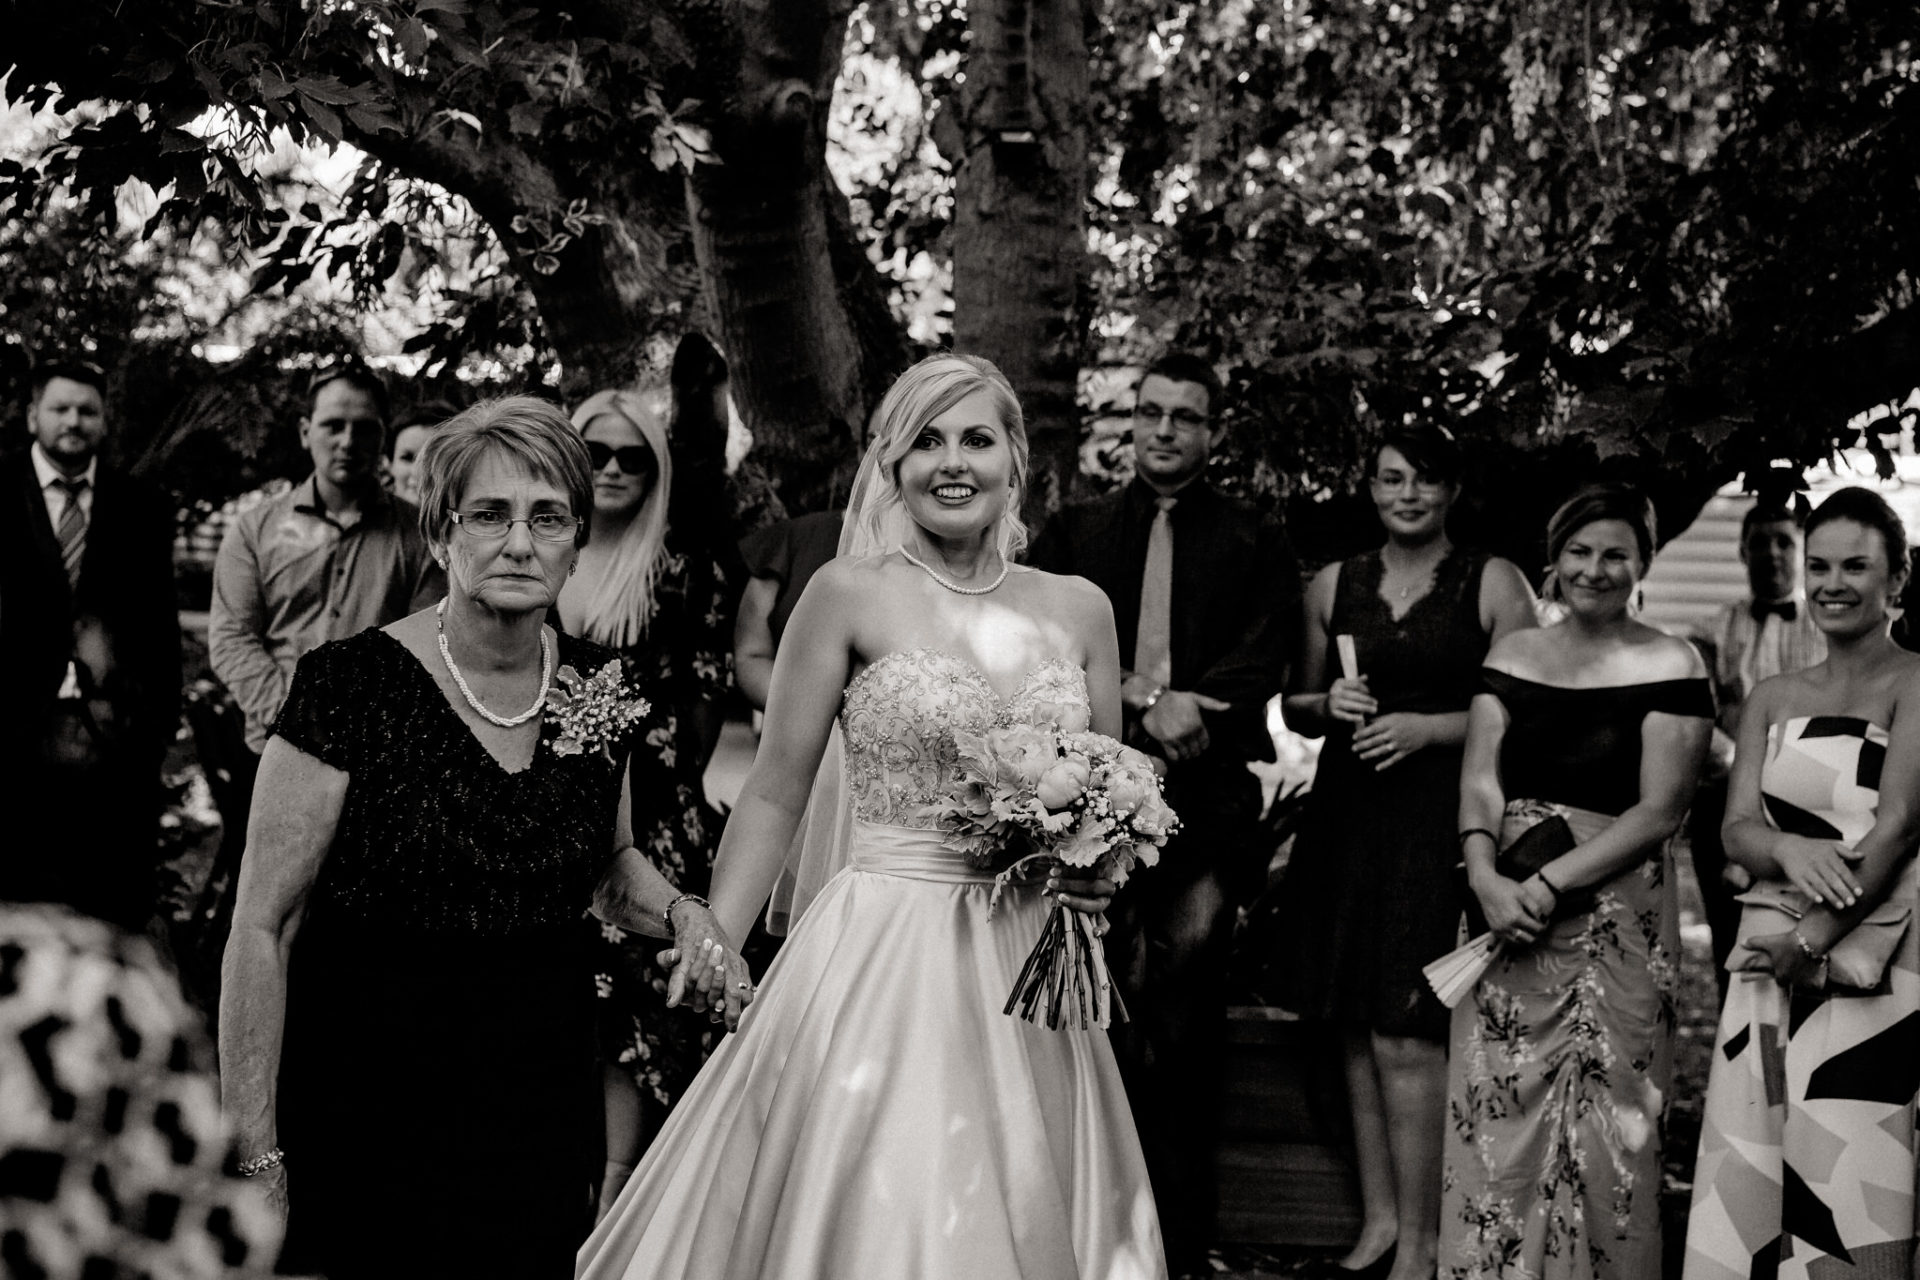 backyard-wedding-australia-melbourne-ceremony-grandma-walk-down-isle